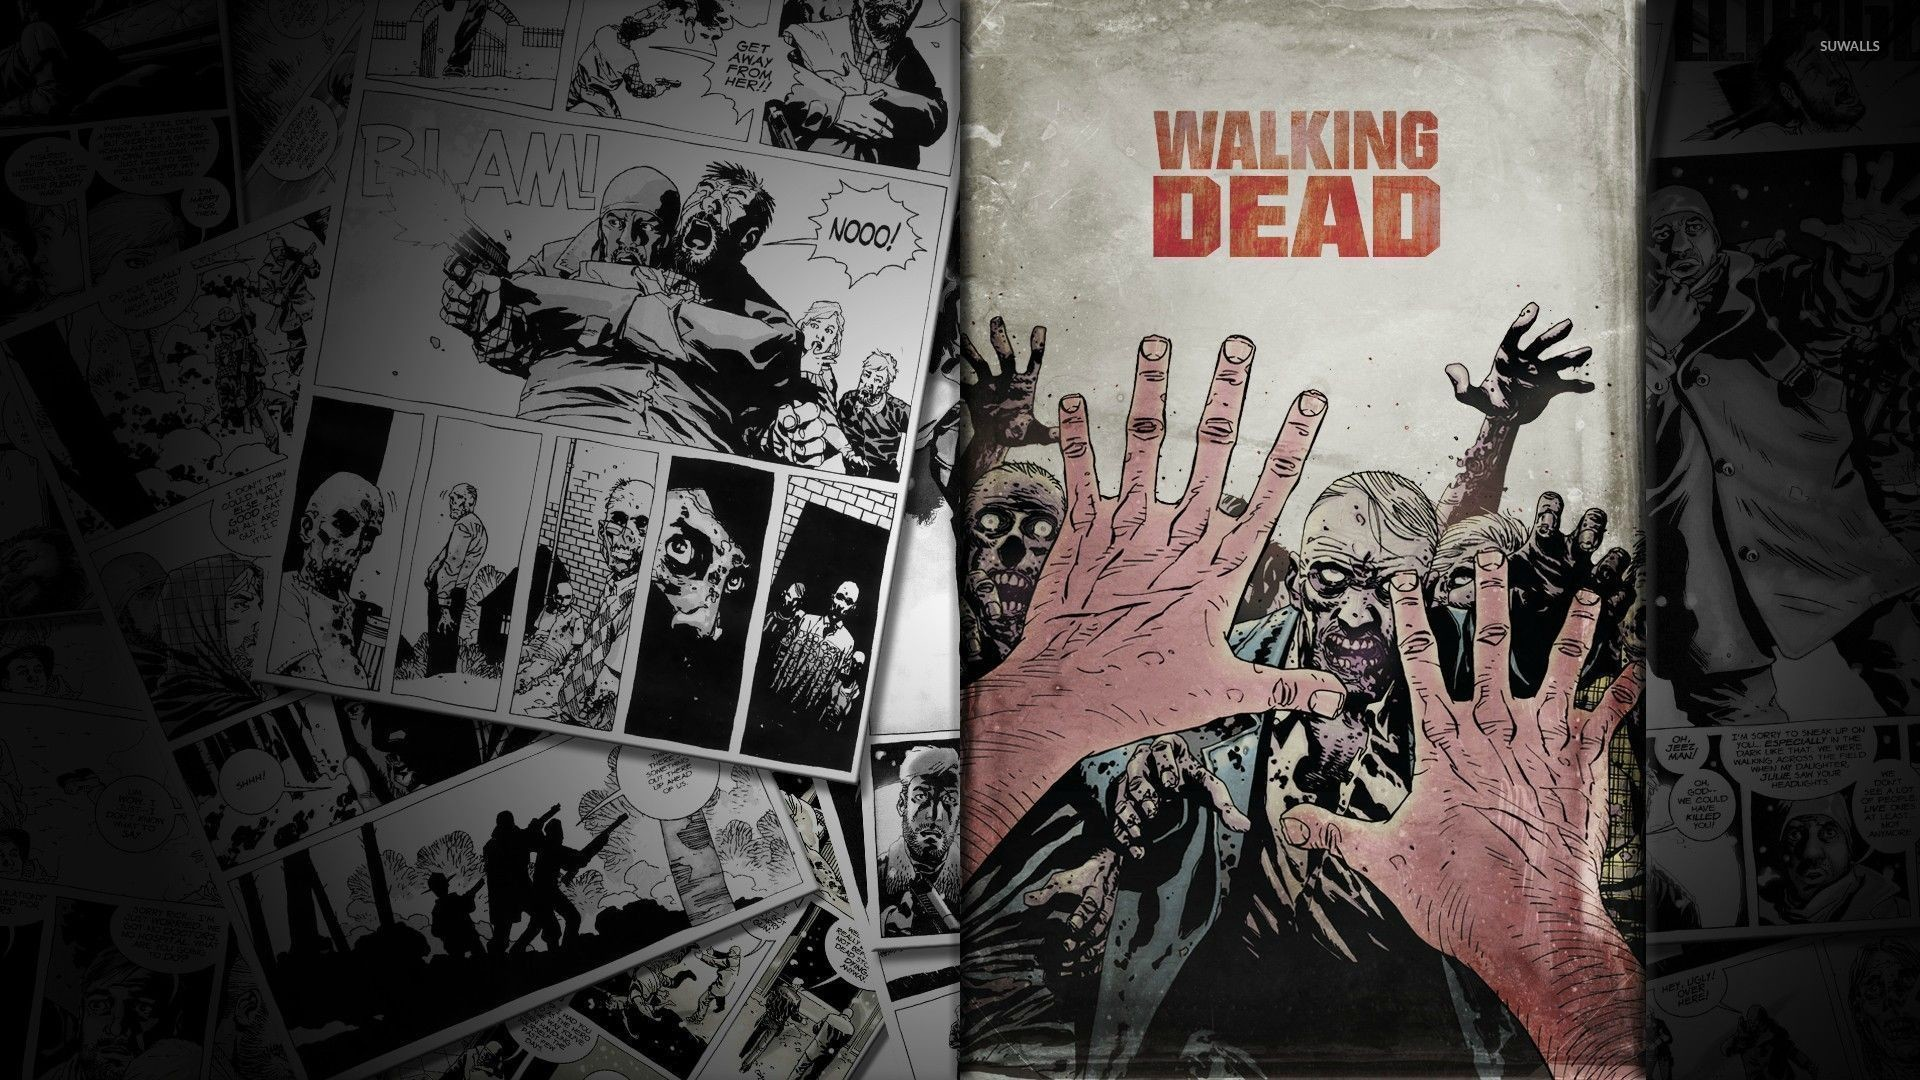 1920x1200 Comics Walking Dead The Manga Rick Grimes Wallpaper